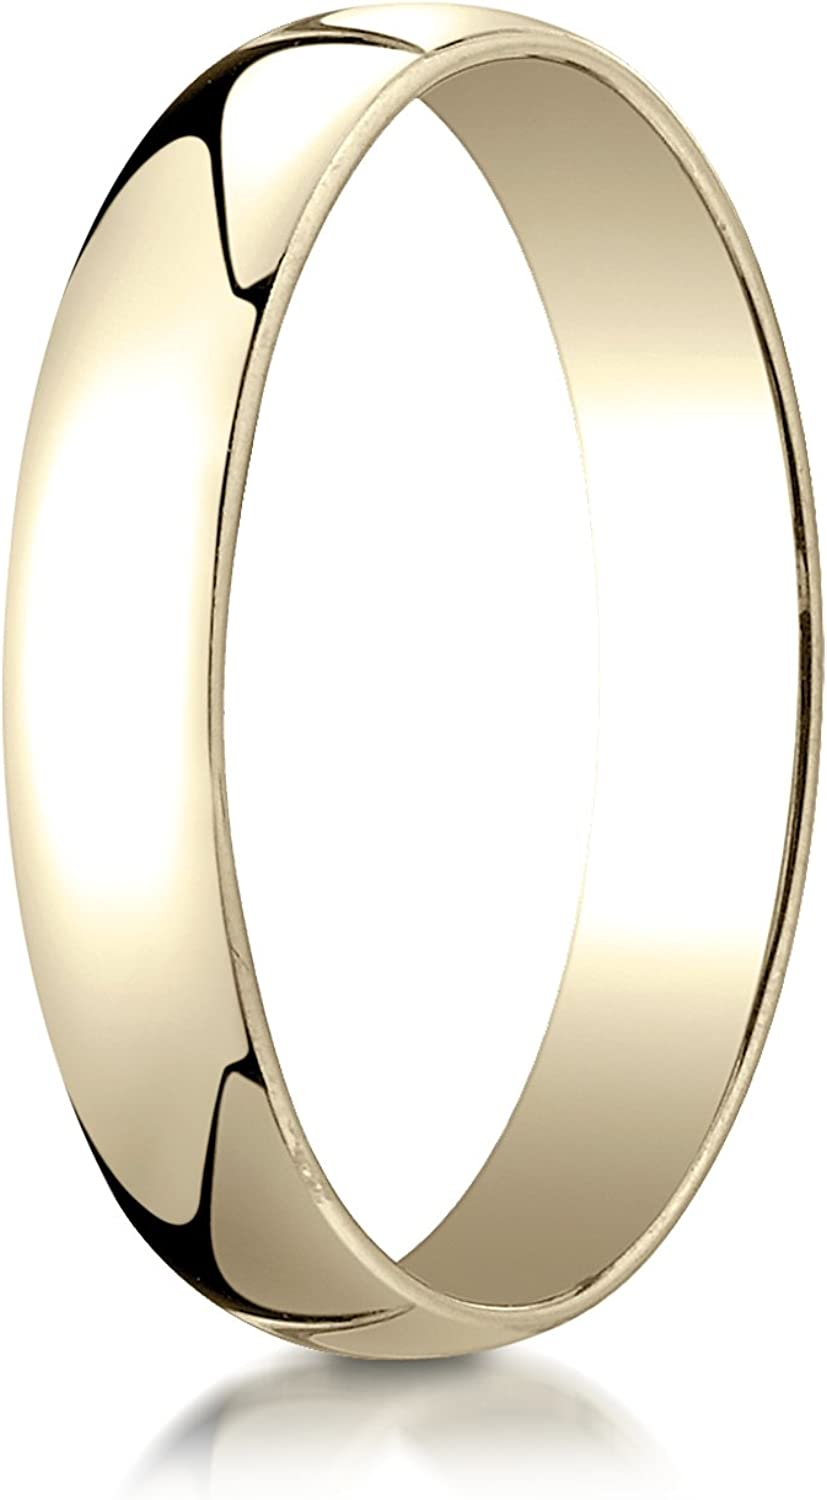 PriceRock 14K Yellow Gold 4mm Low Dome Light Wedding Band Ring for Men /& Women Size 4 to 15